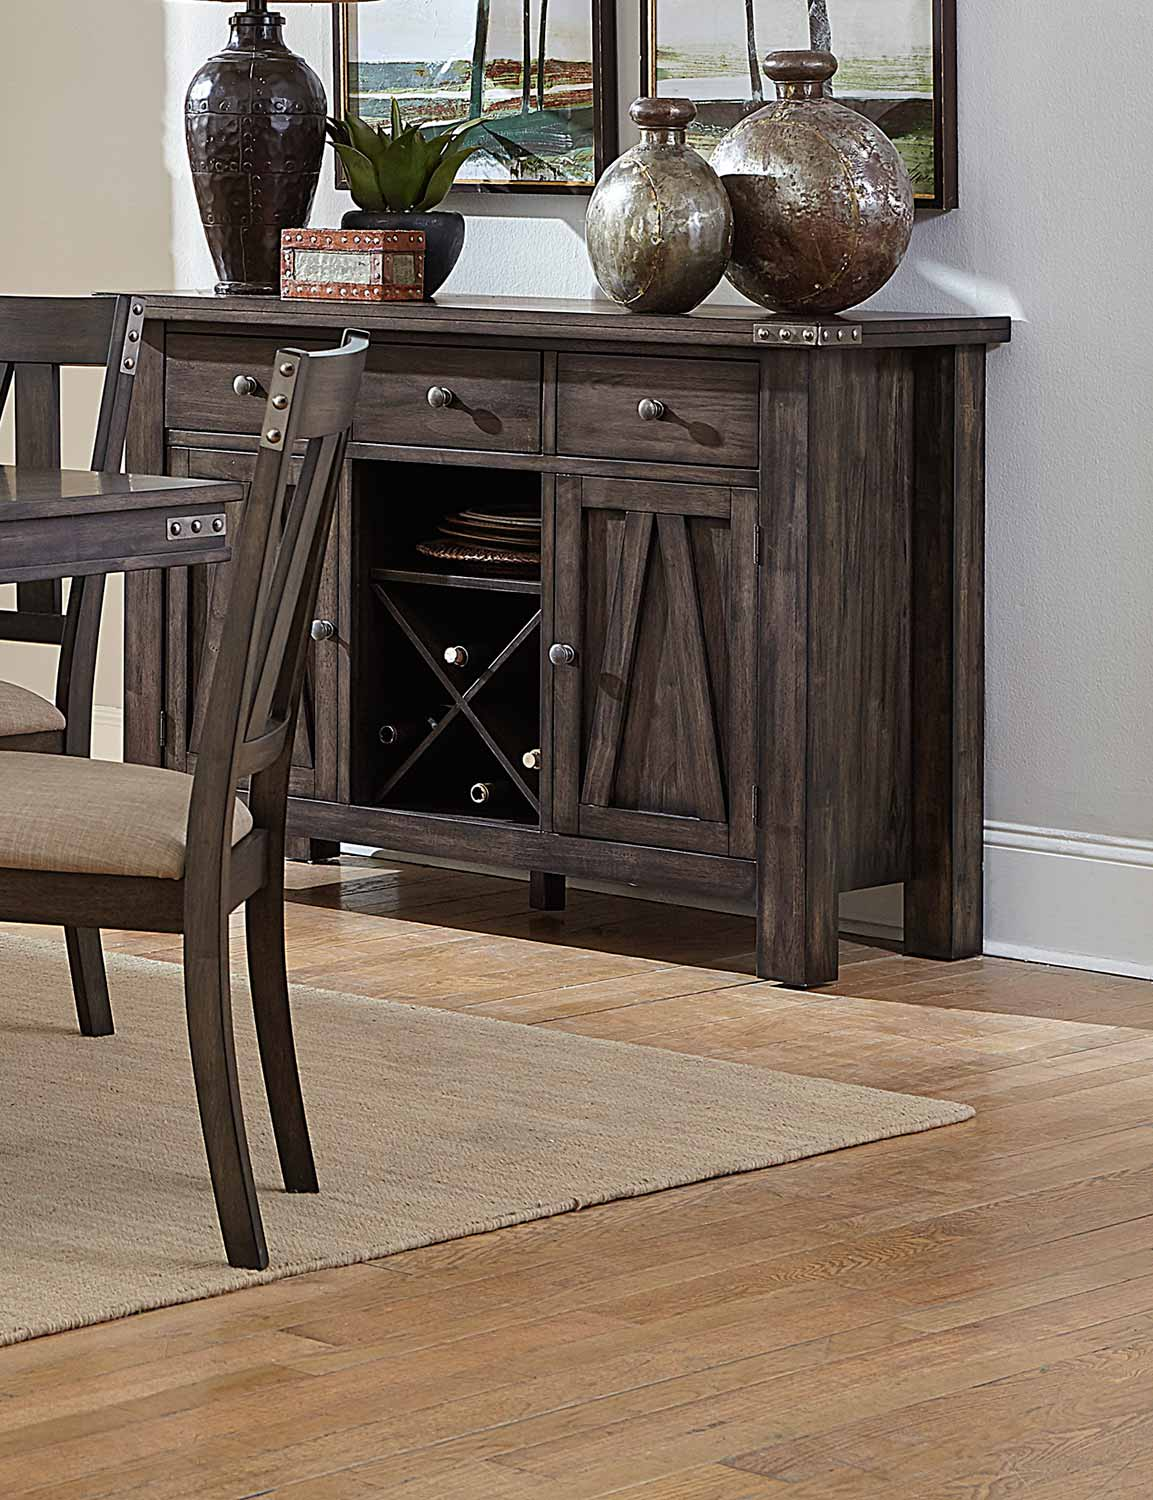 Homelegance Mattawa Server - Brown/Hints of Gray Undertone